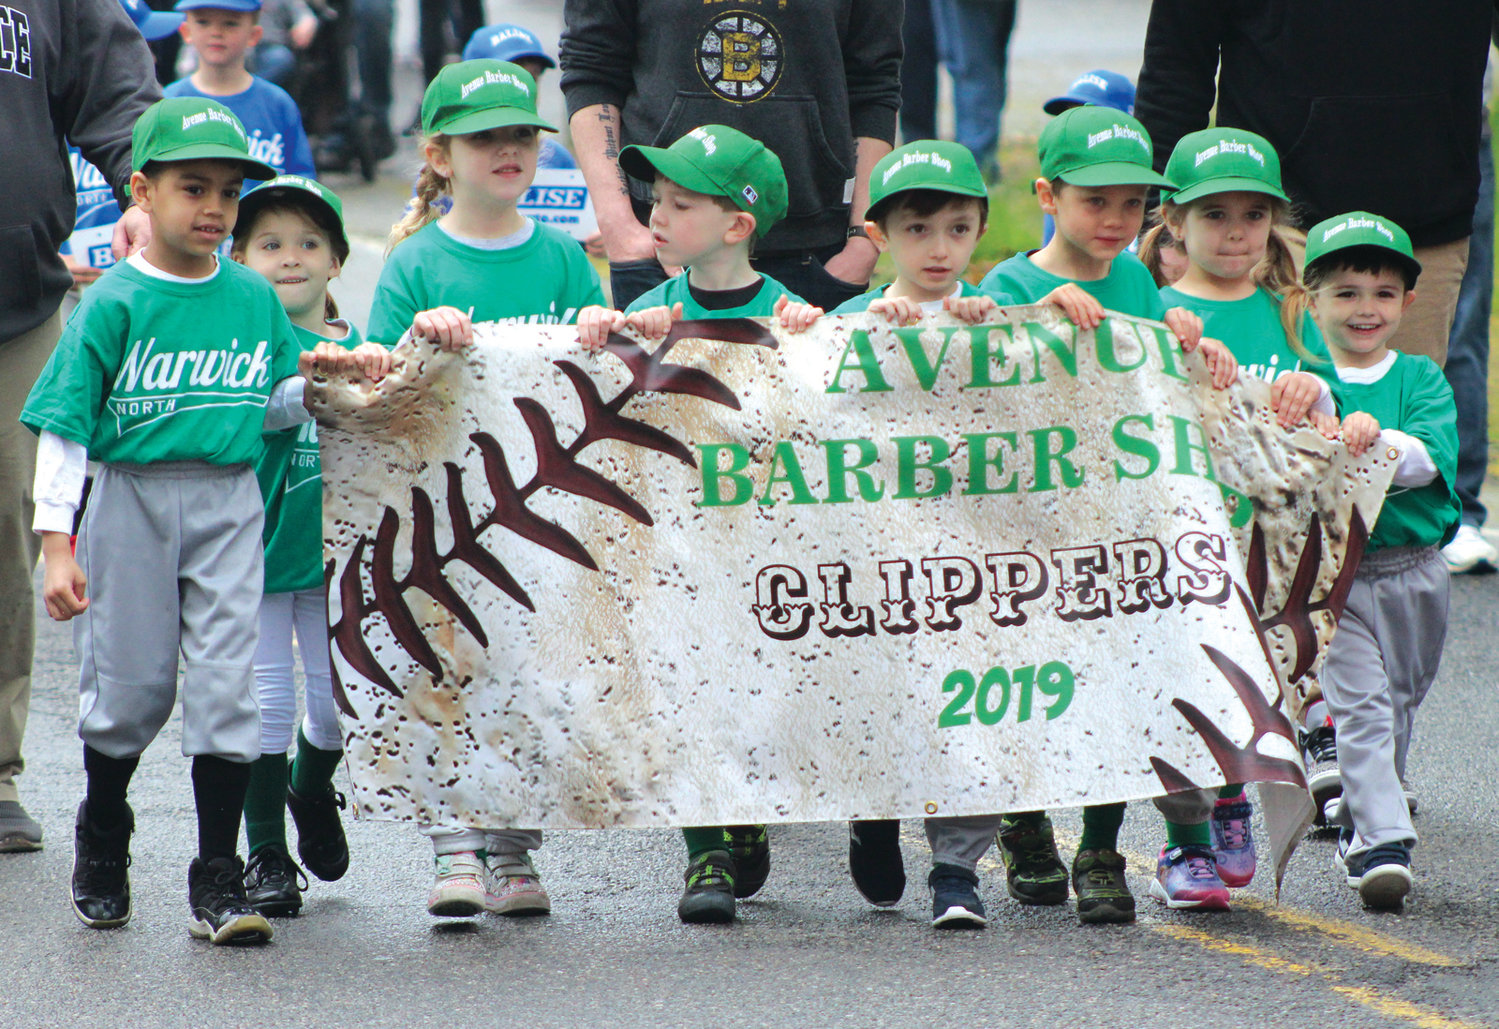 CUTTING THE LINE: Members of the Avenue Barber Shop team from Warwick Little League North lead the way during the annual parade that was held on Saturday morning on Warwick Ave.